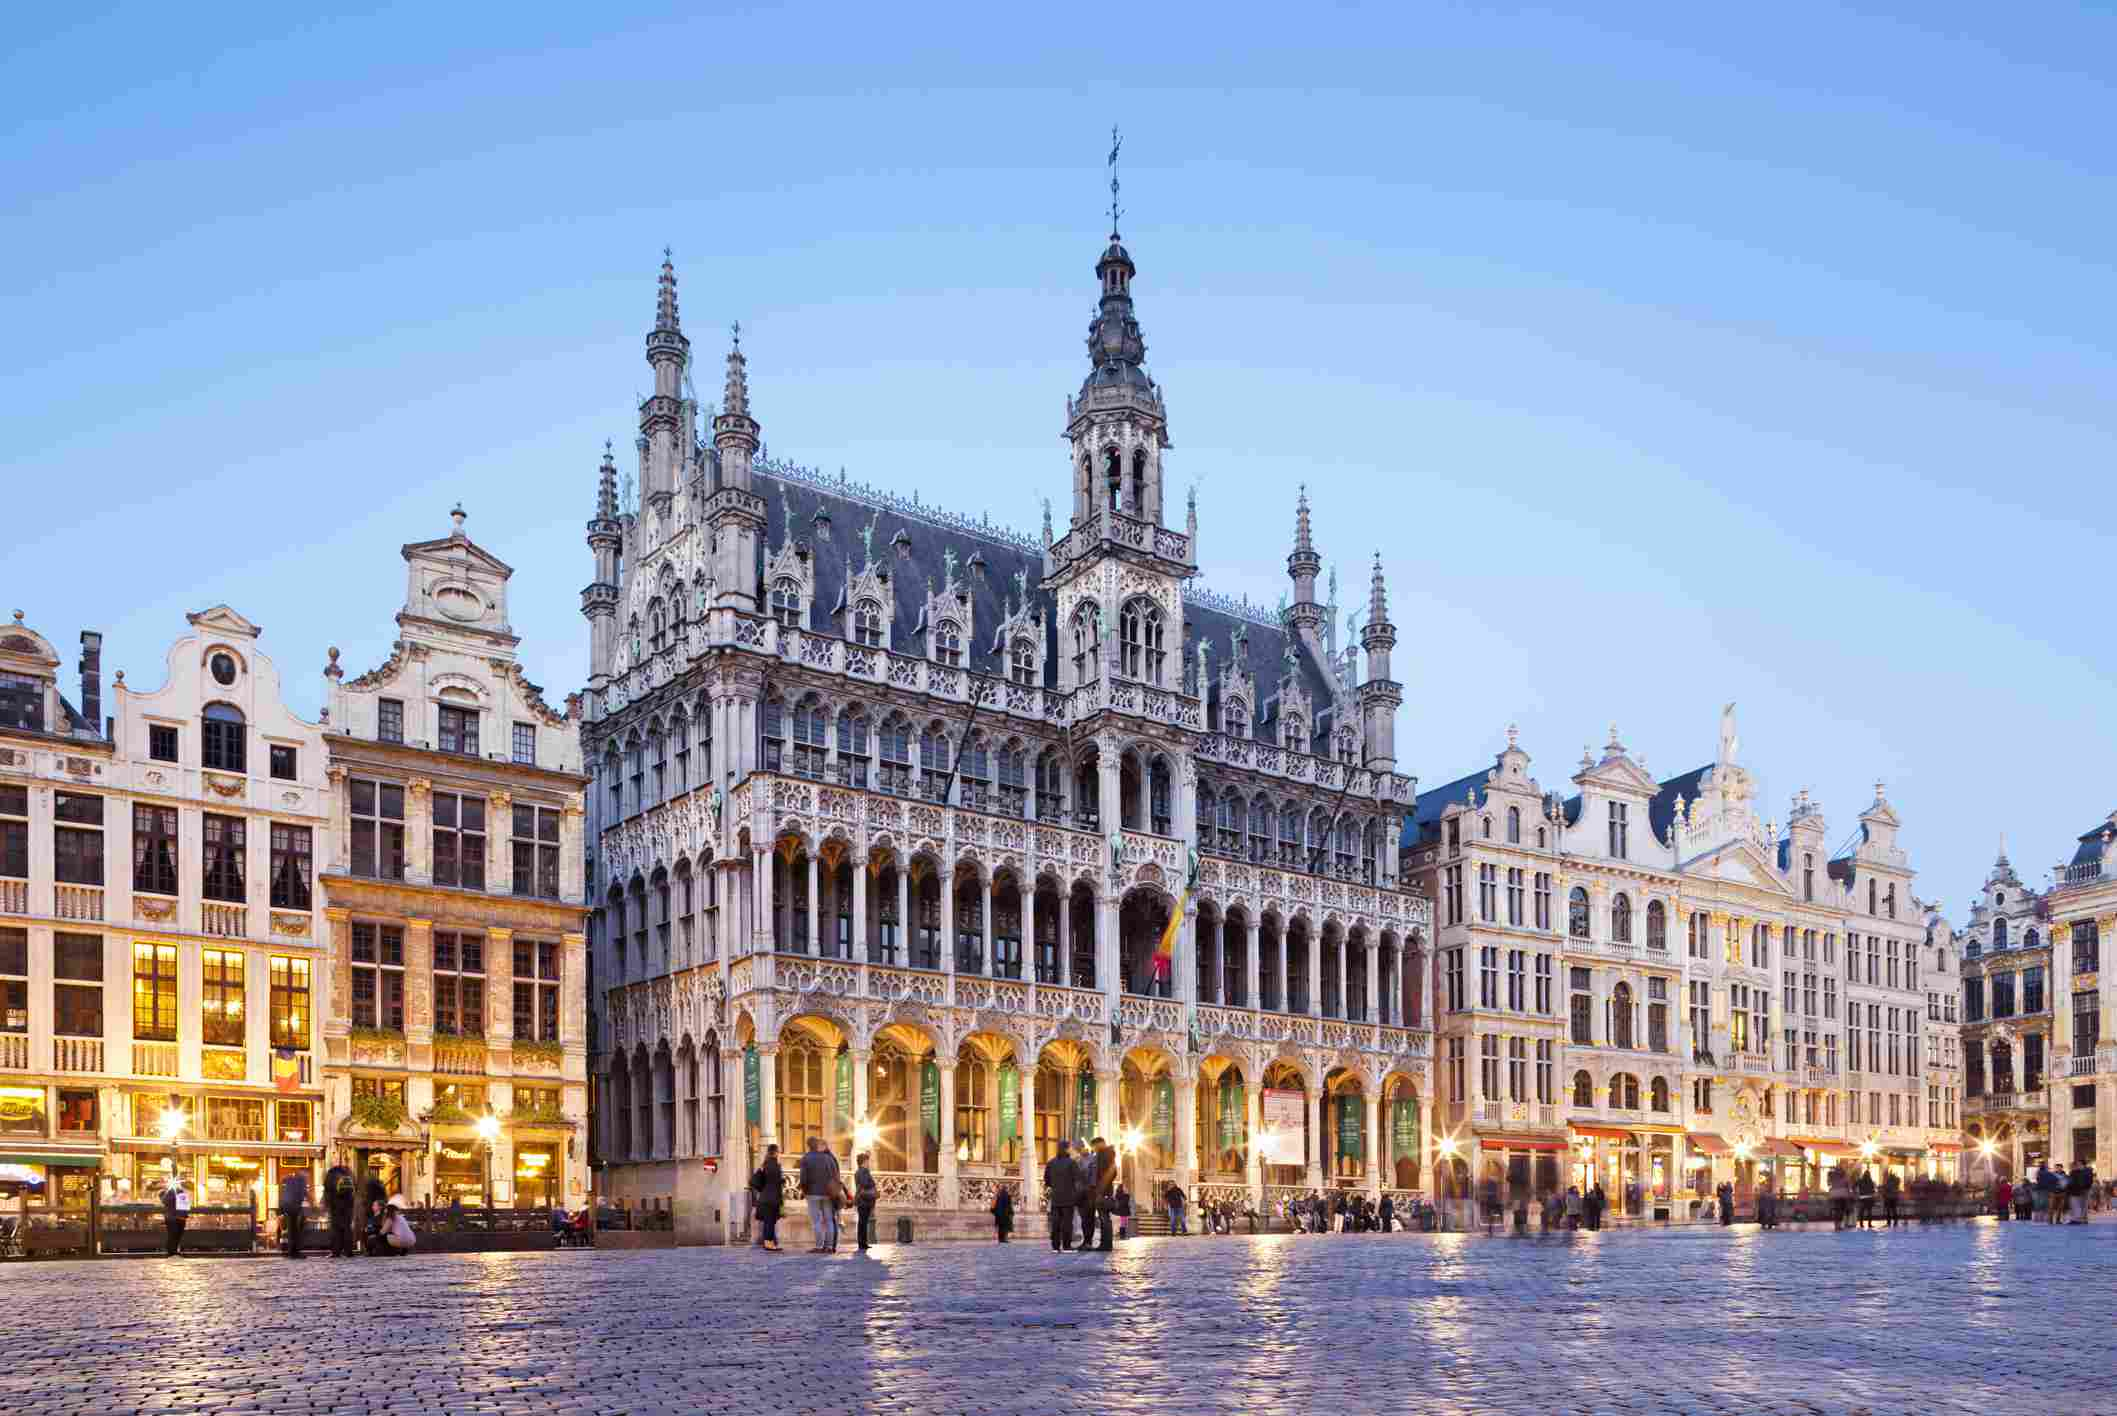 The Top 10 Things to Do in Brussels